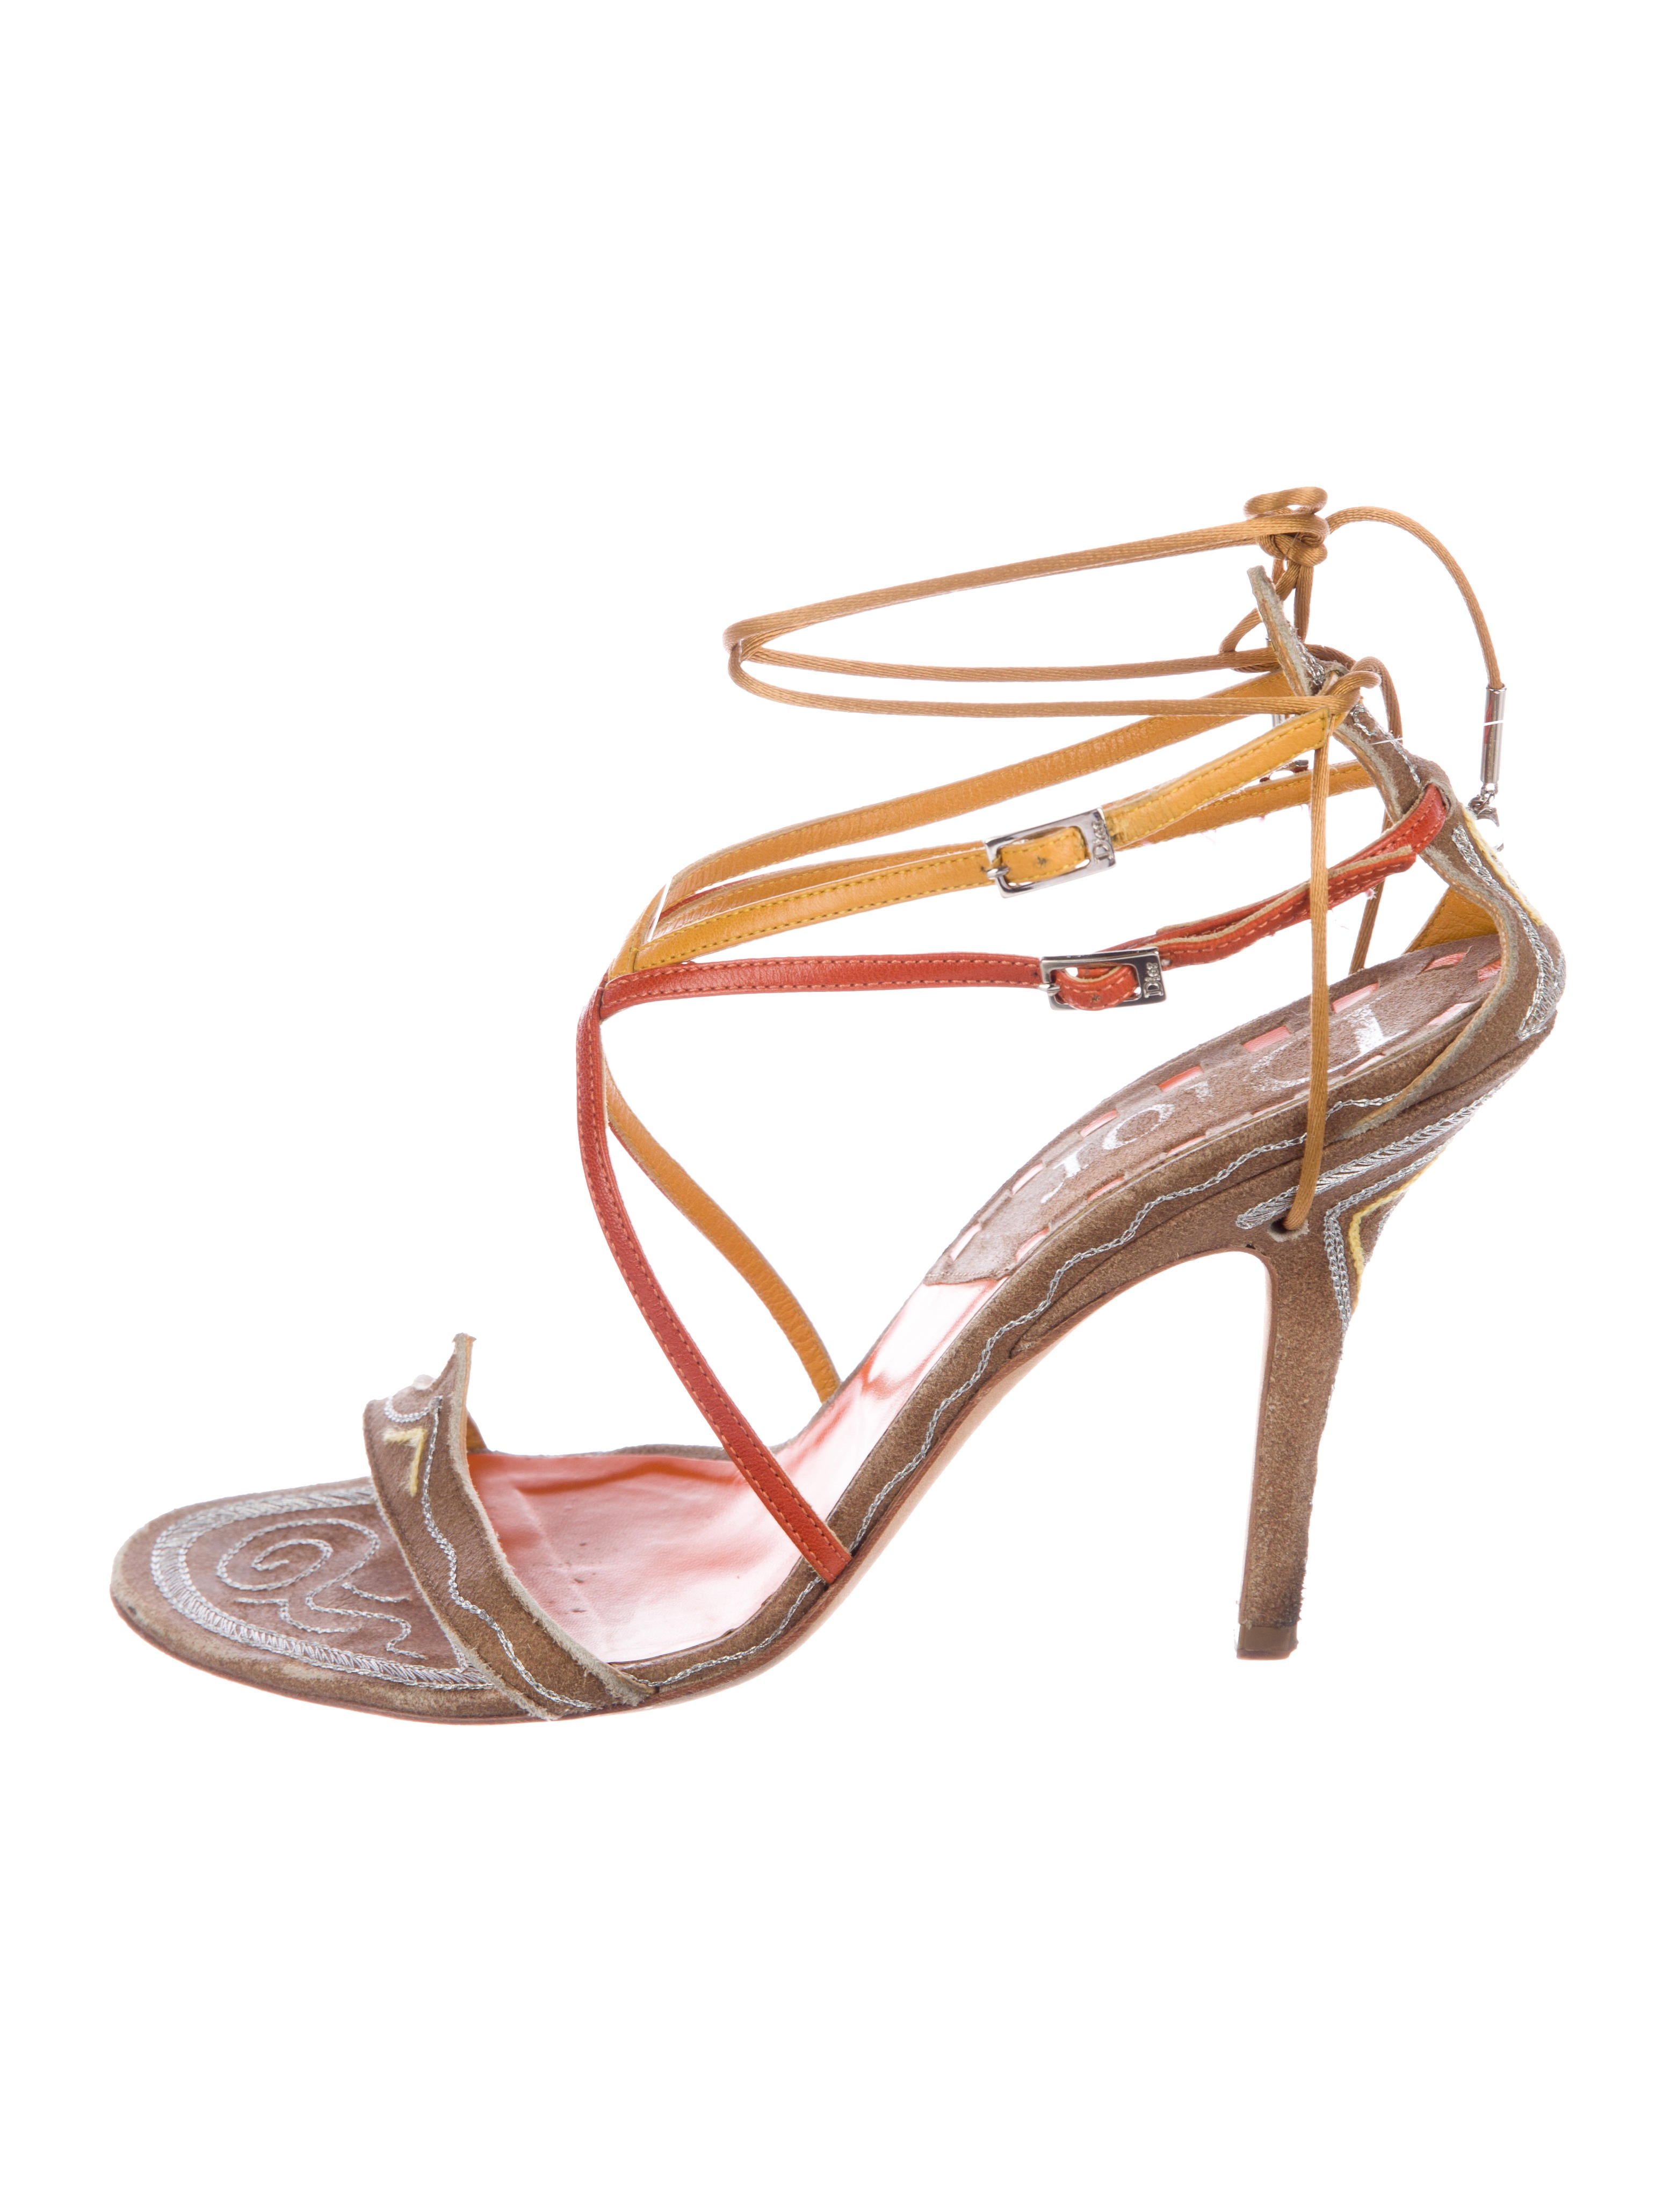 outlet 100% original official cheap price Christian Dior Suede Embellished Sandals in China cheap online free shipping deals for sale cheap authentic EKPcZ